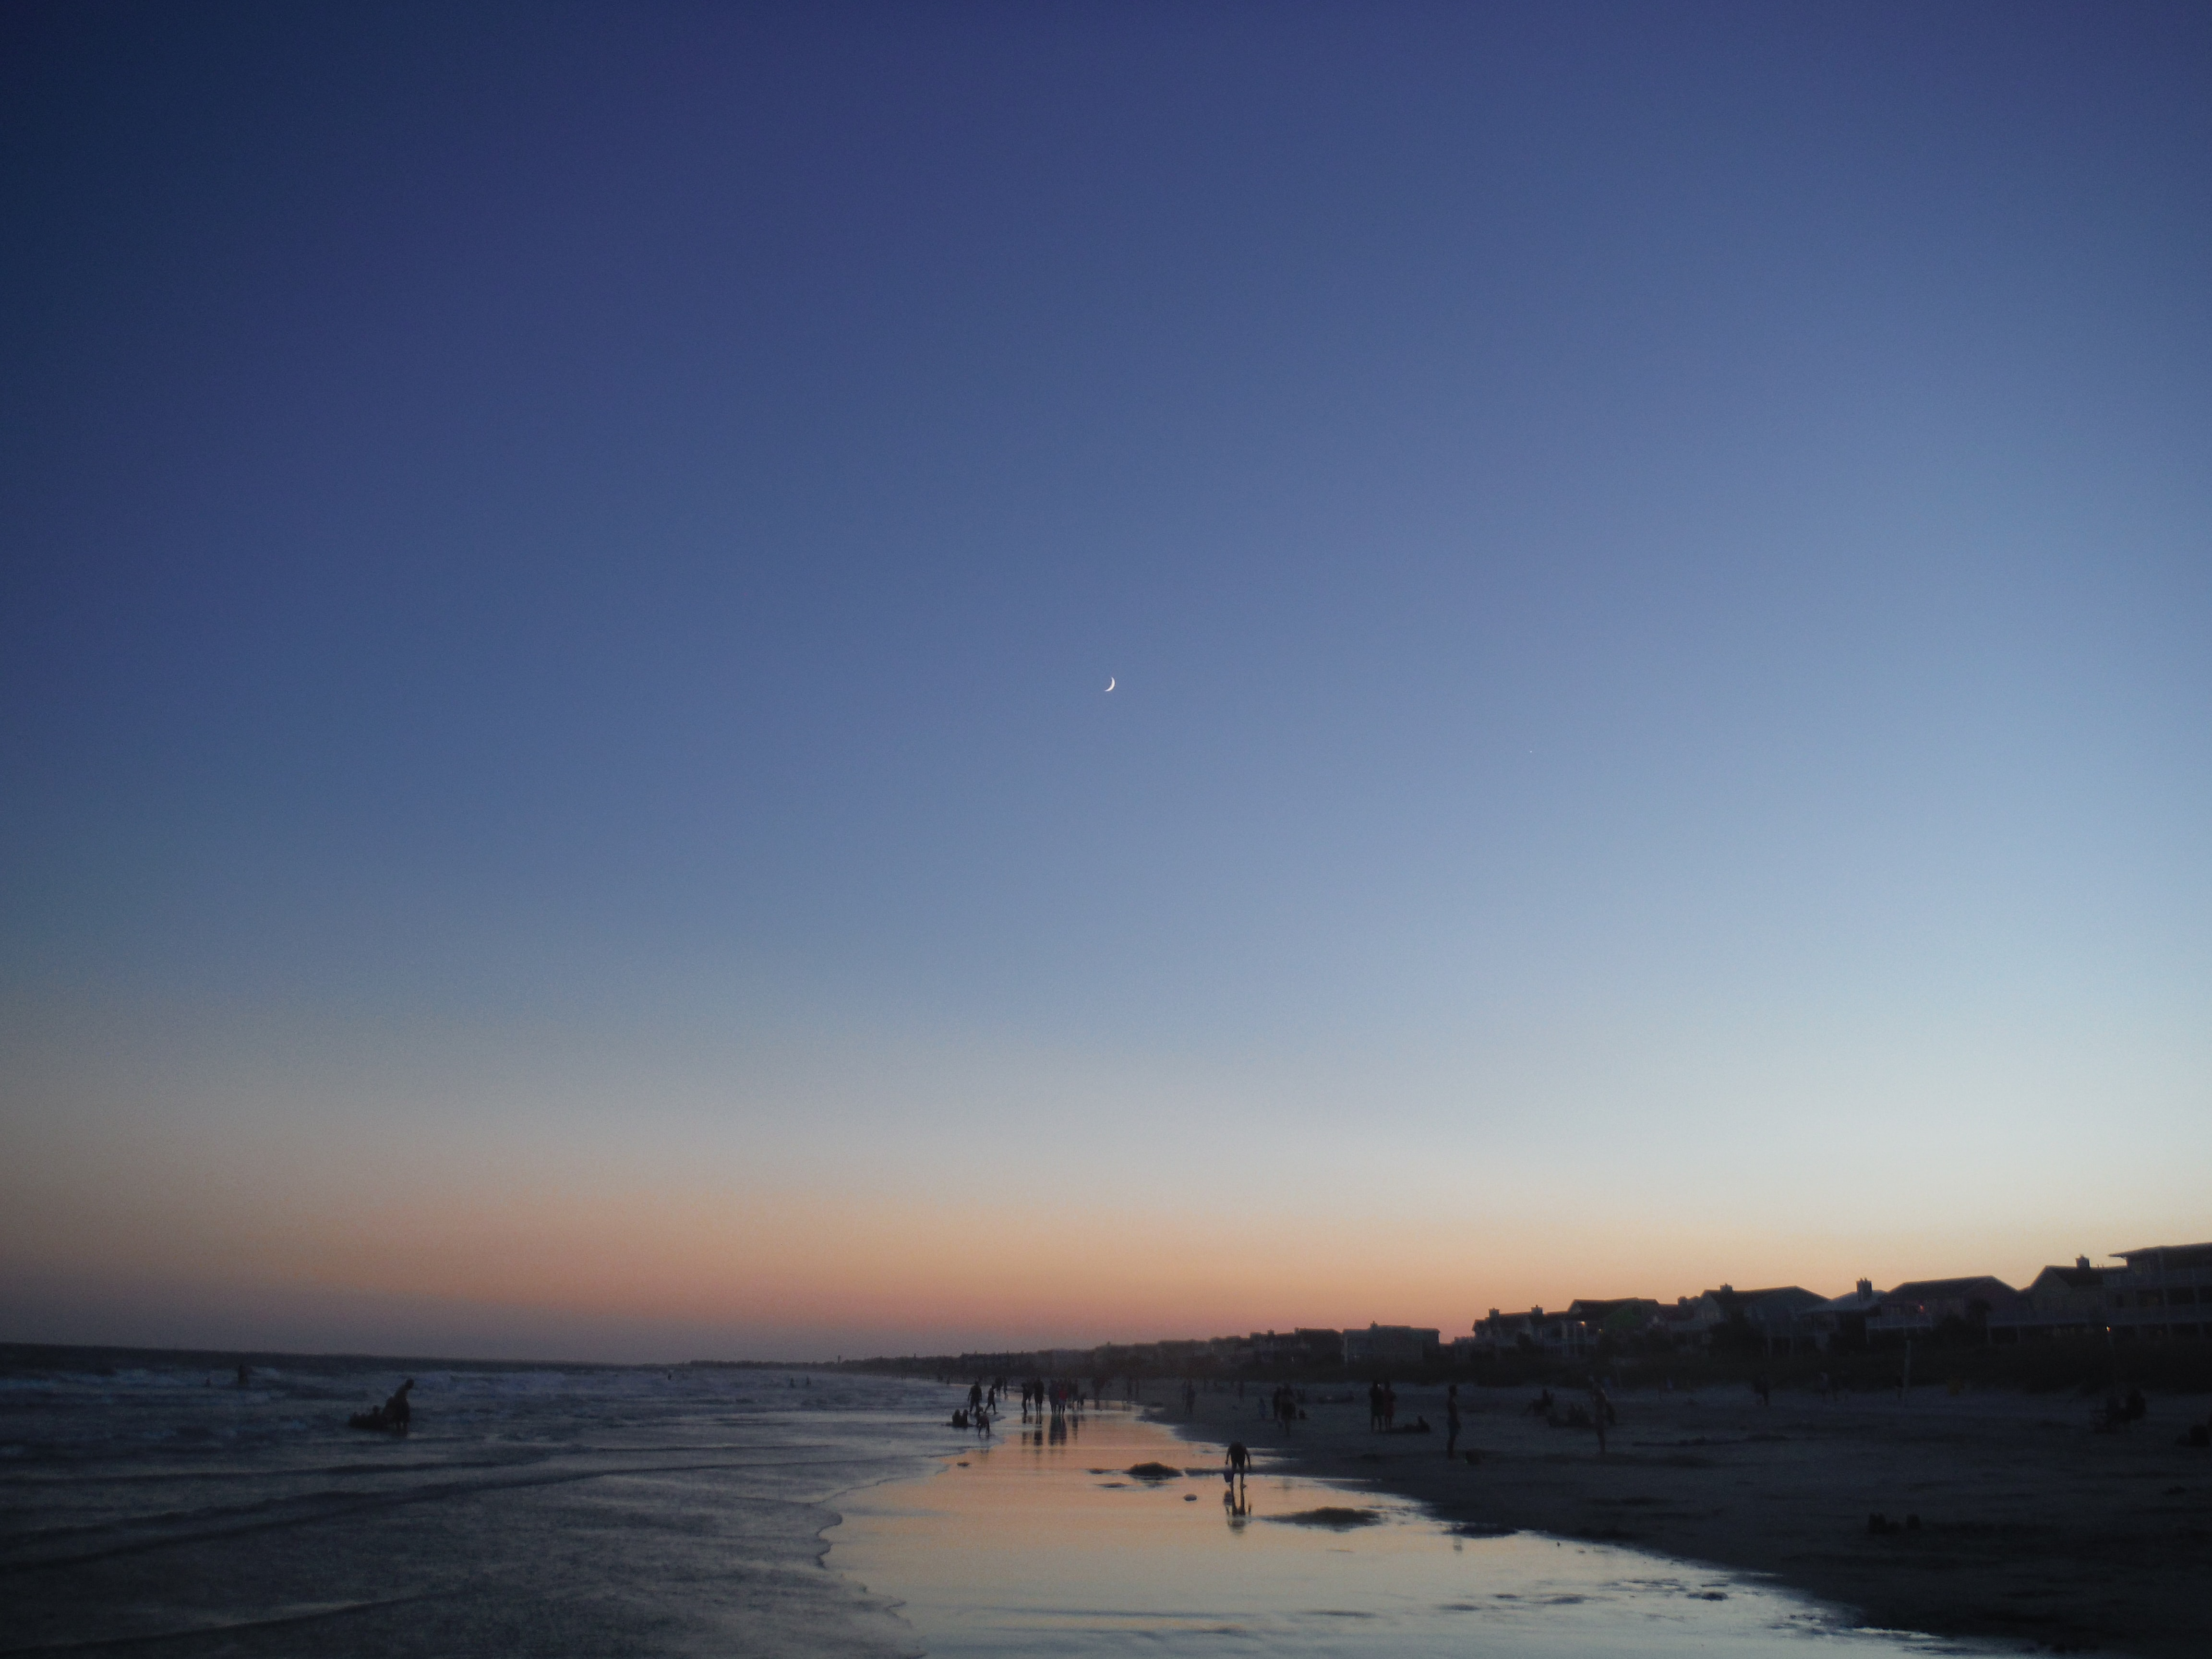 Night falls over a beach as a crescent moon shines in the sky